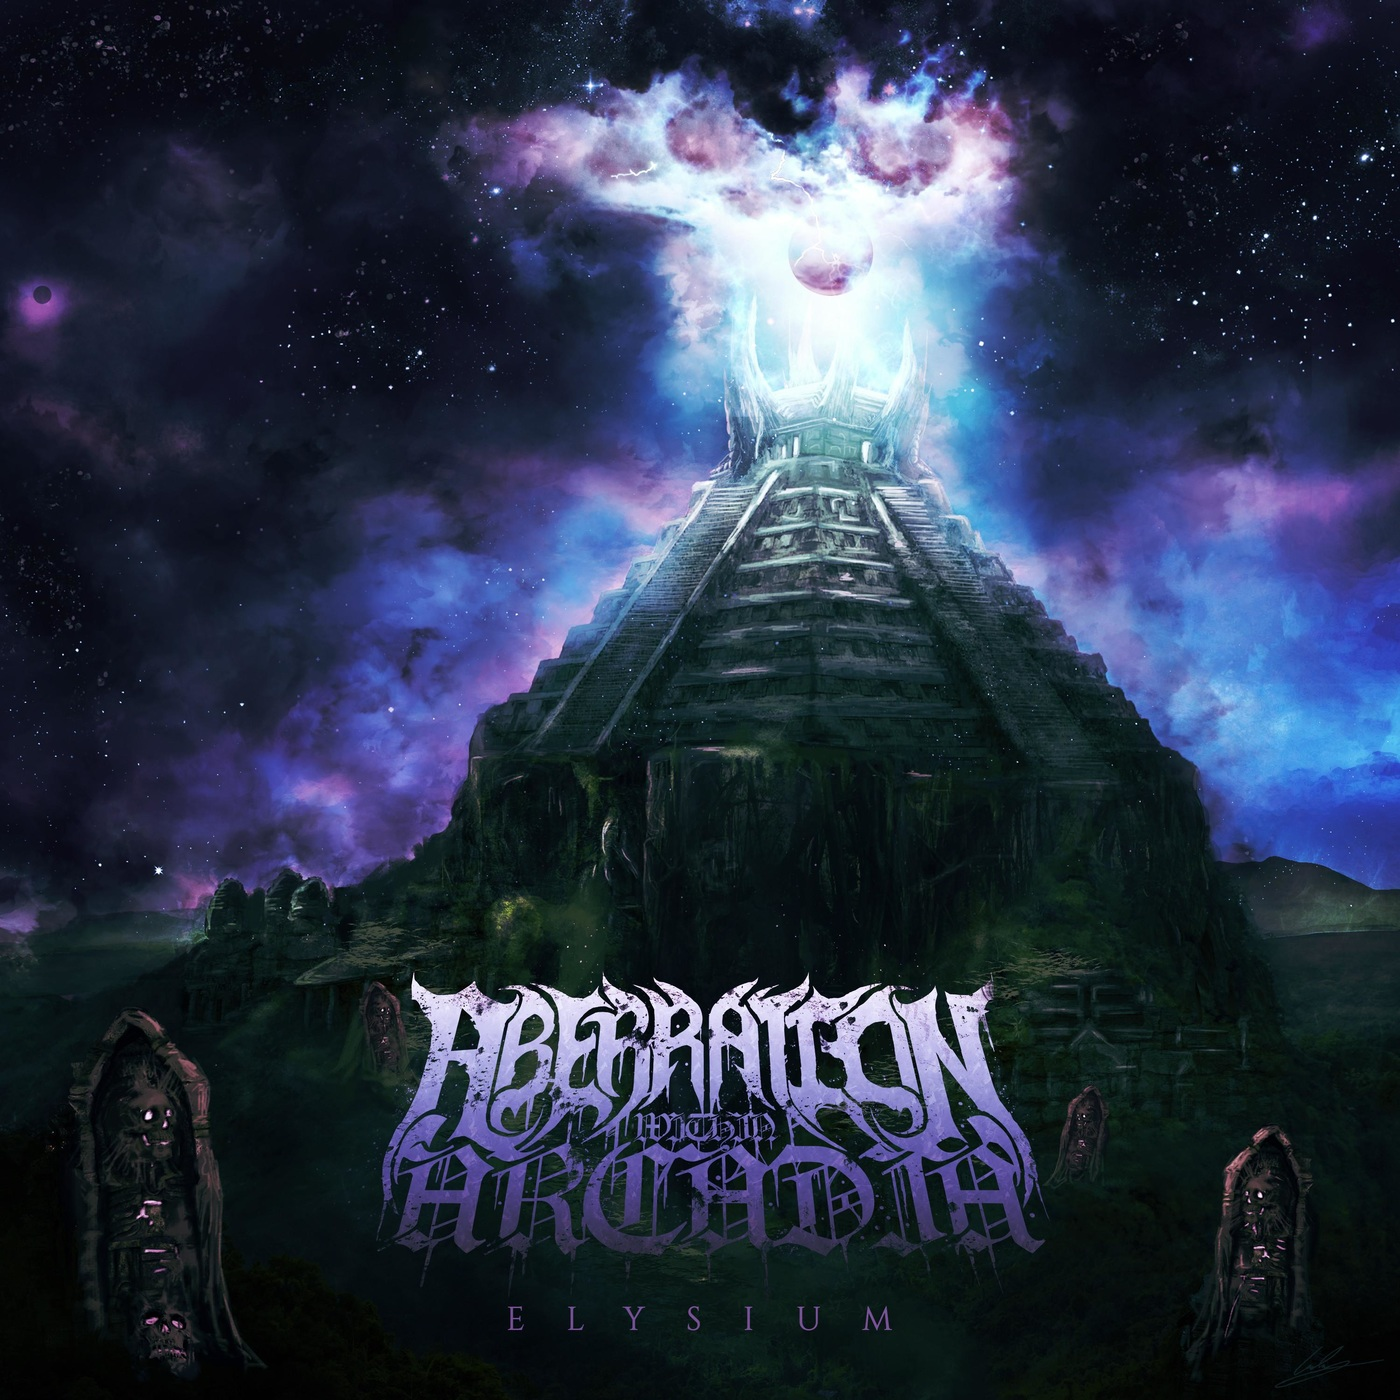 Aberration Within Arcadia - Elysium (2019)